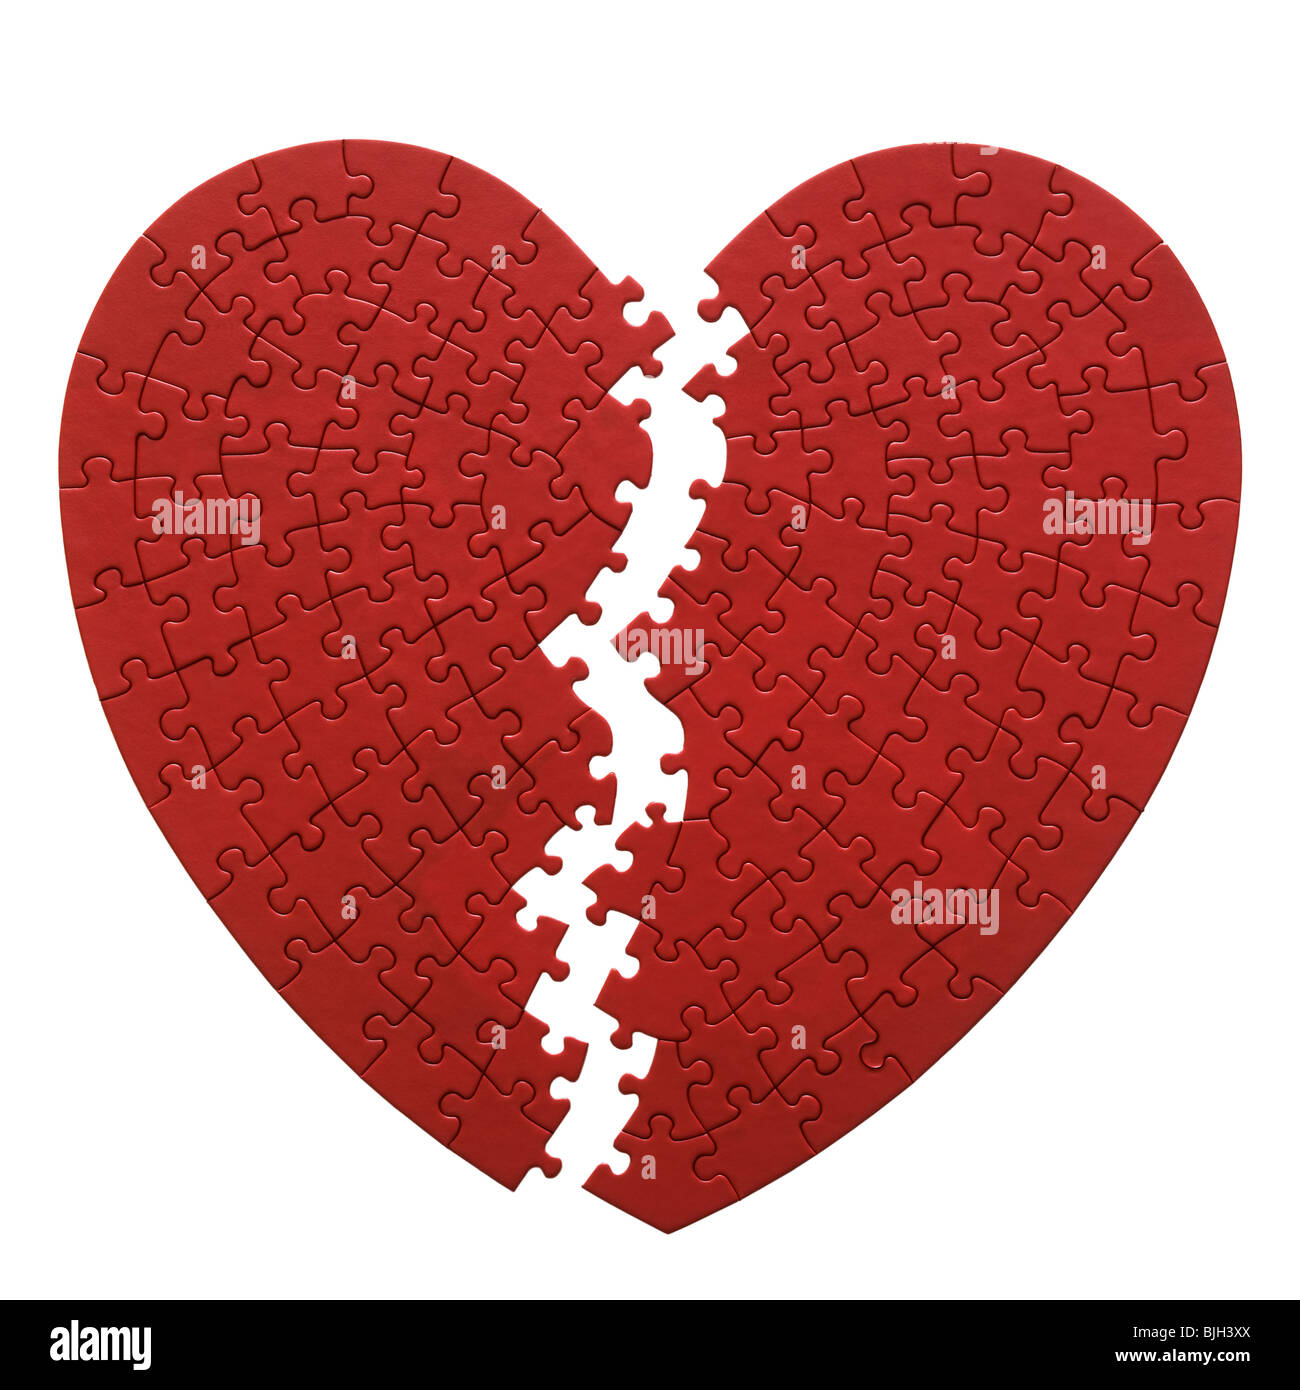 red heart shaped jigsaw puzzle on a white background - Stock Image